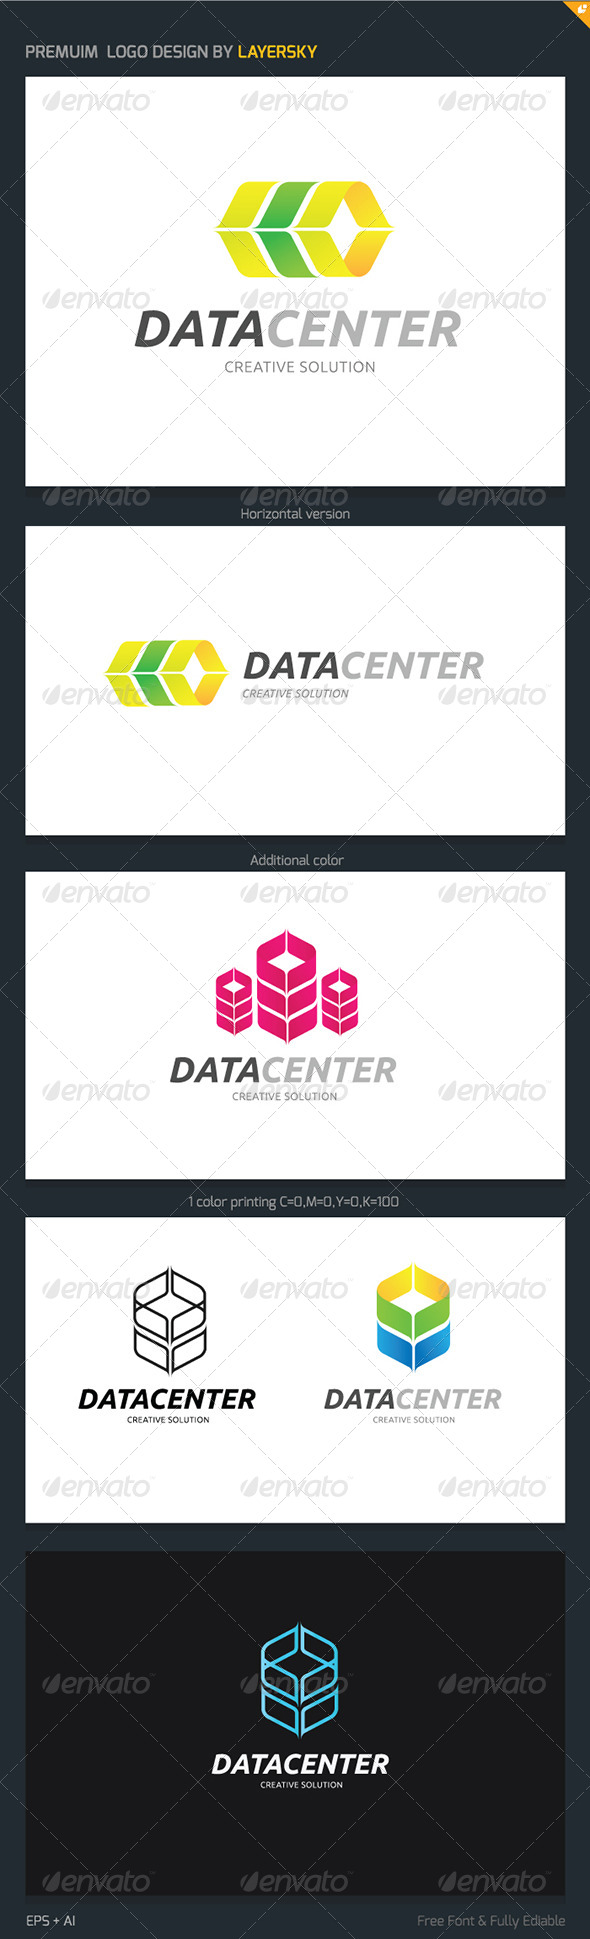 Data Center Logo - Symbols Logo Templates